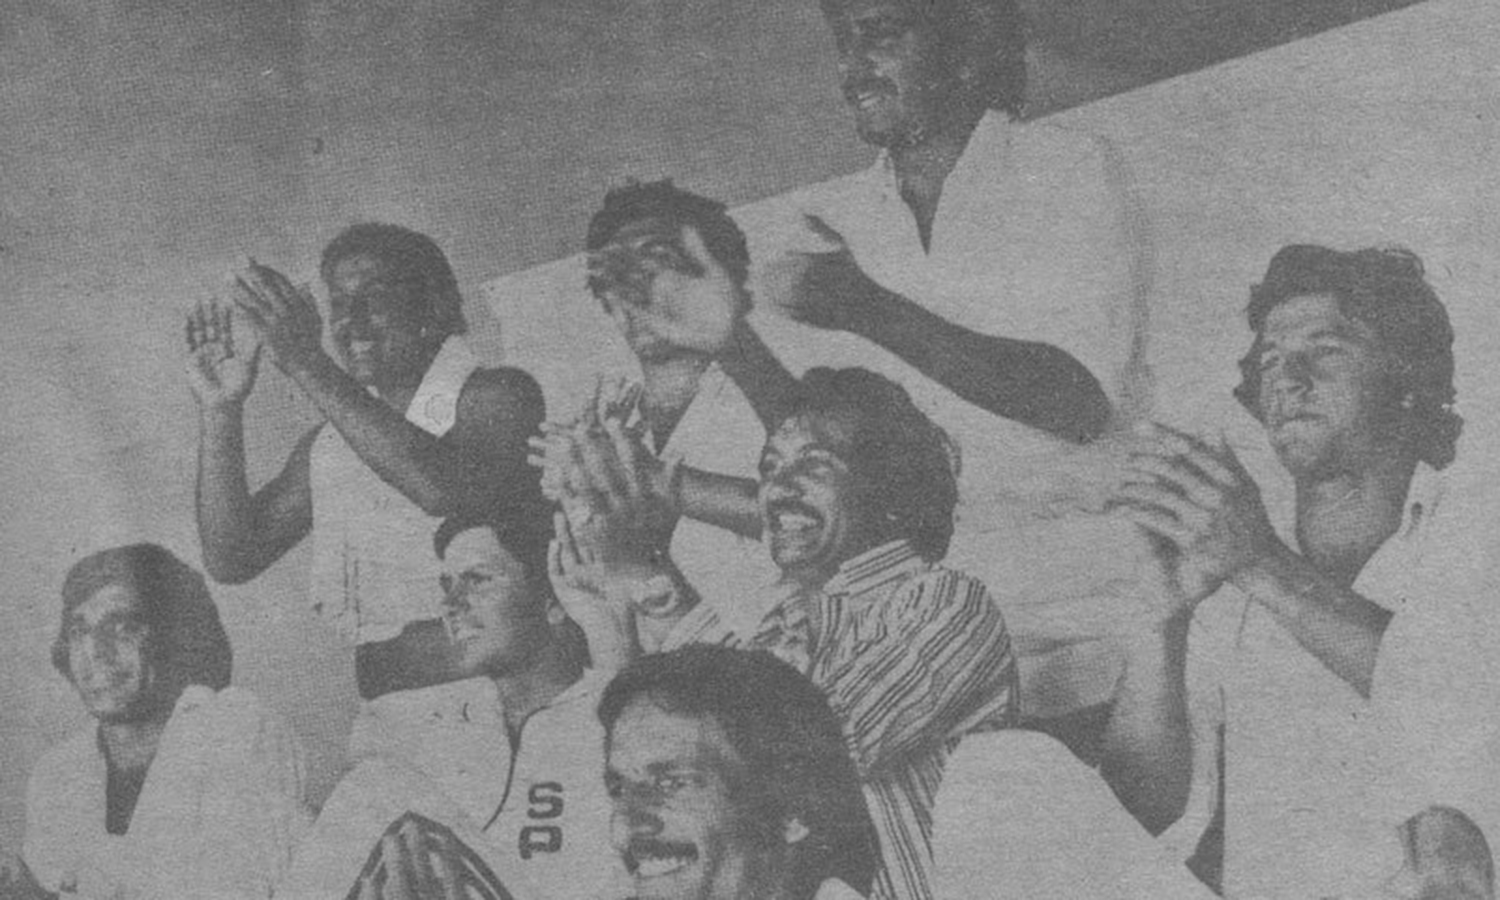 Pakistani dressing room applauds Asif's century. From left: Haroon, Salim Altaf, Wasim Bari (slightly hidden), Majid, Sardraz, Sadiq, Imran and Taslim Arif.